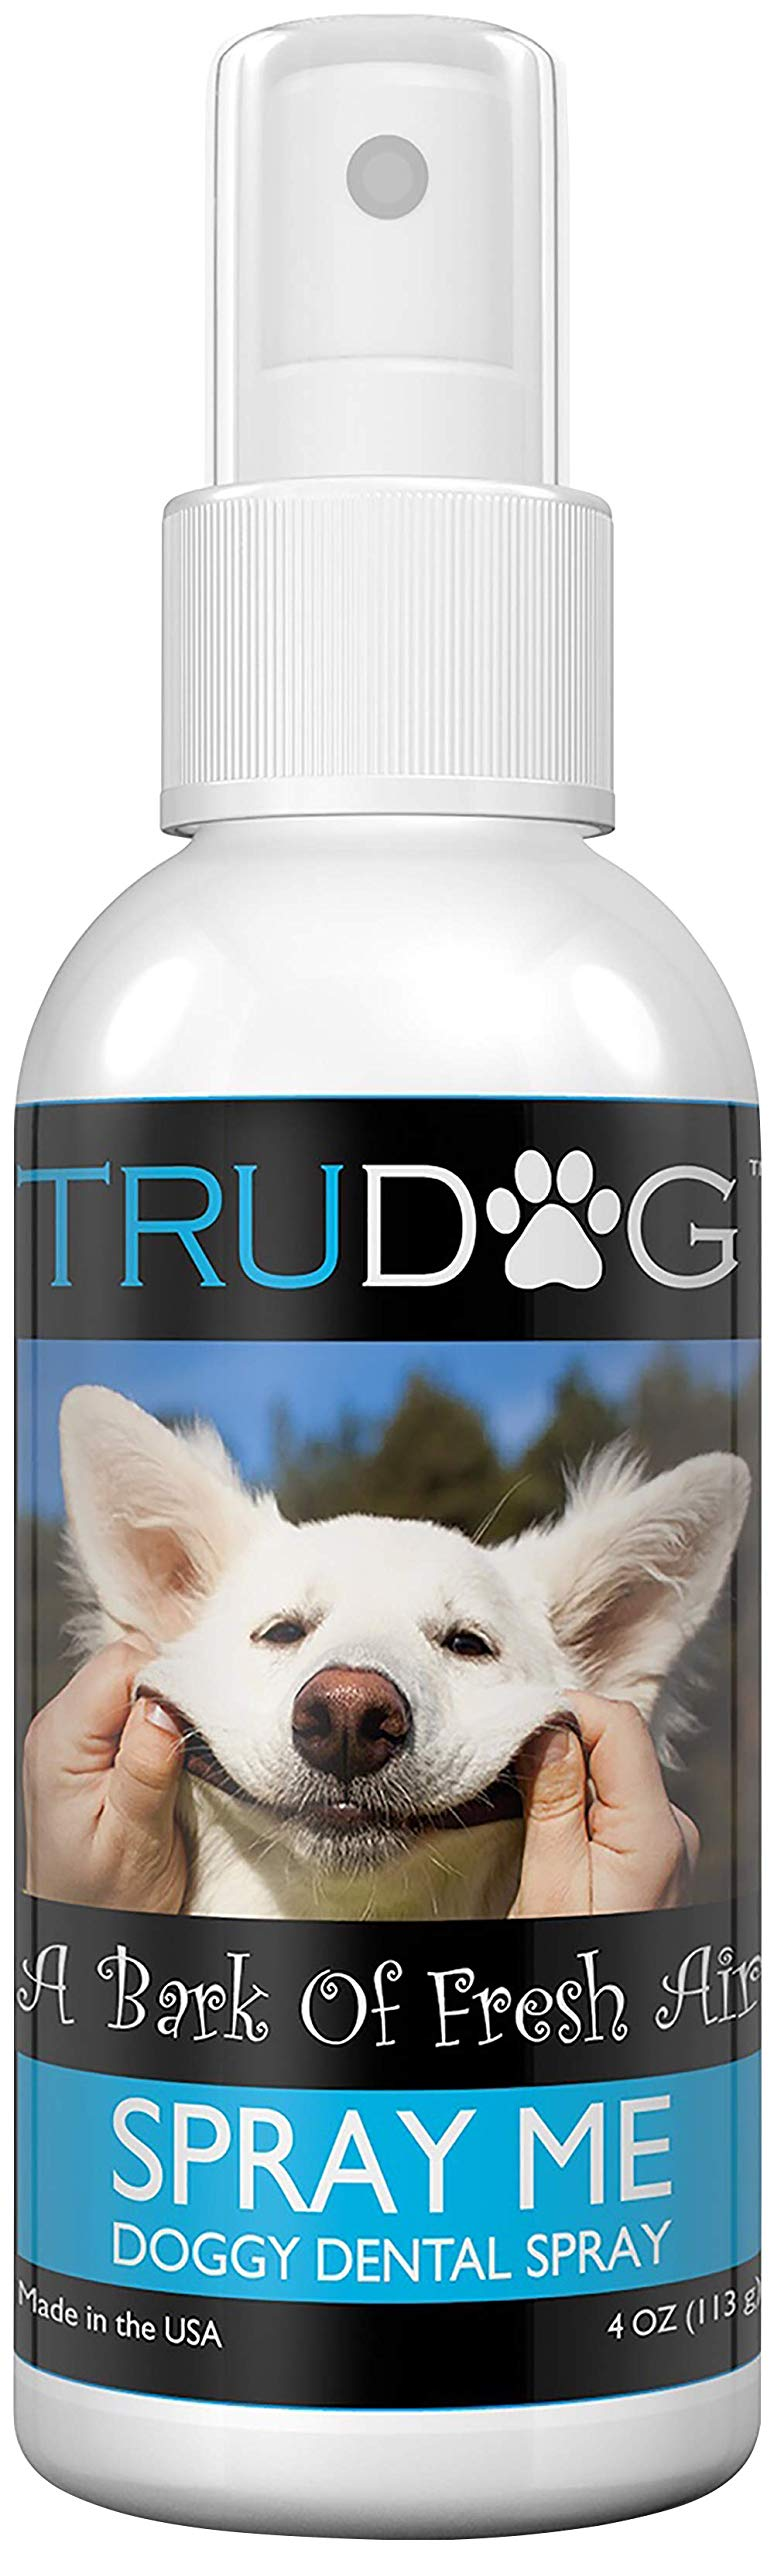 Dog Breath Freshener - Spray Me: Doggy Dental Spray (4Oz) - All Natural Ingredients That Freshen Breath While Reducing Dental Plaque And Tartar Build-Up Without Brushing - Veterinarian Approved by TruDog